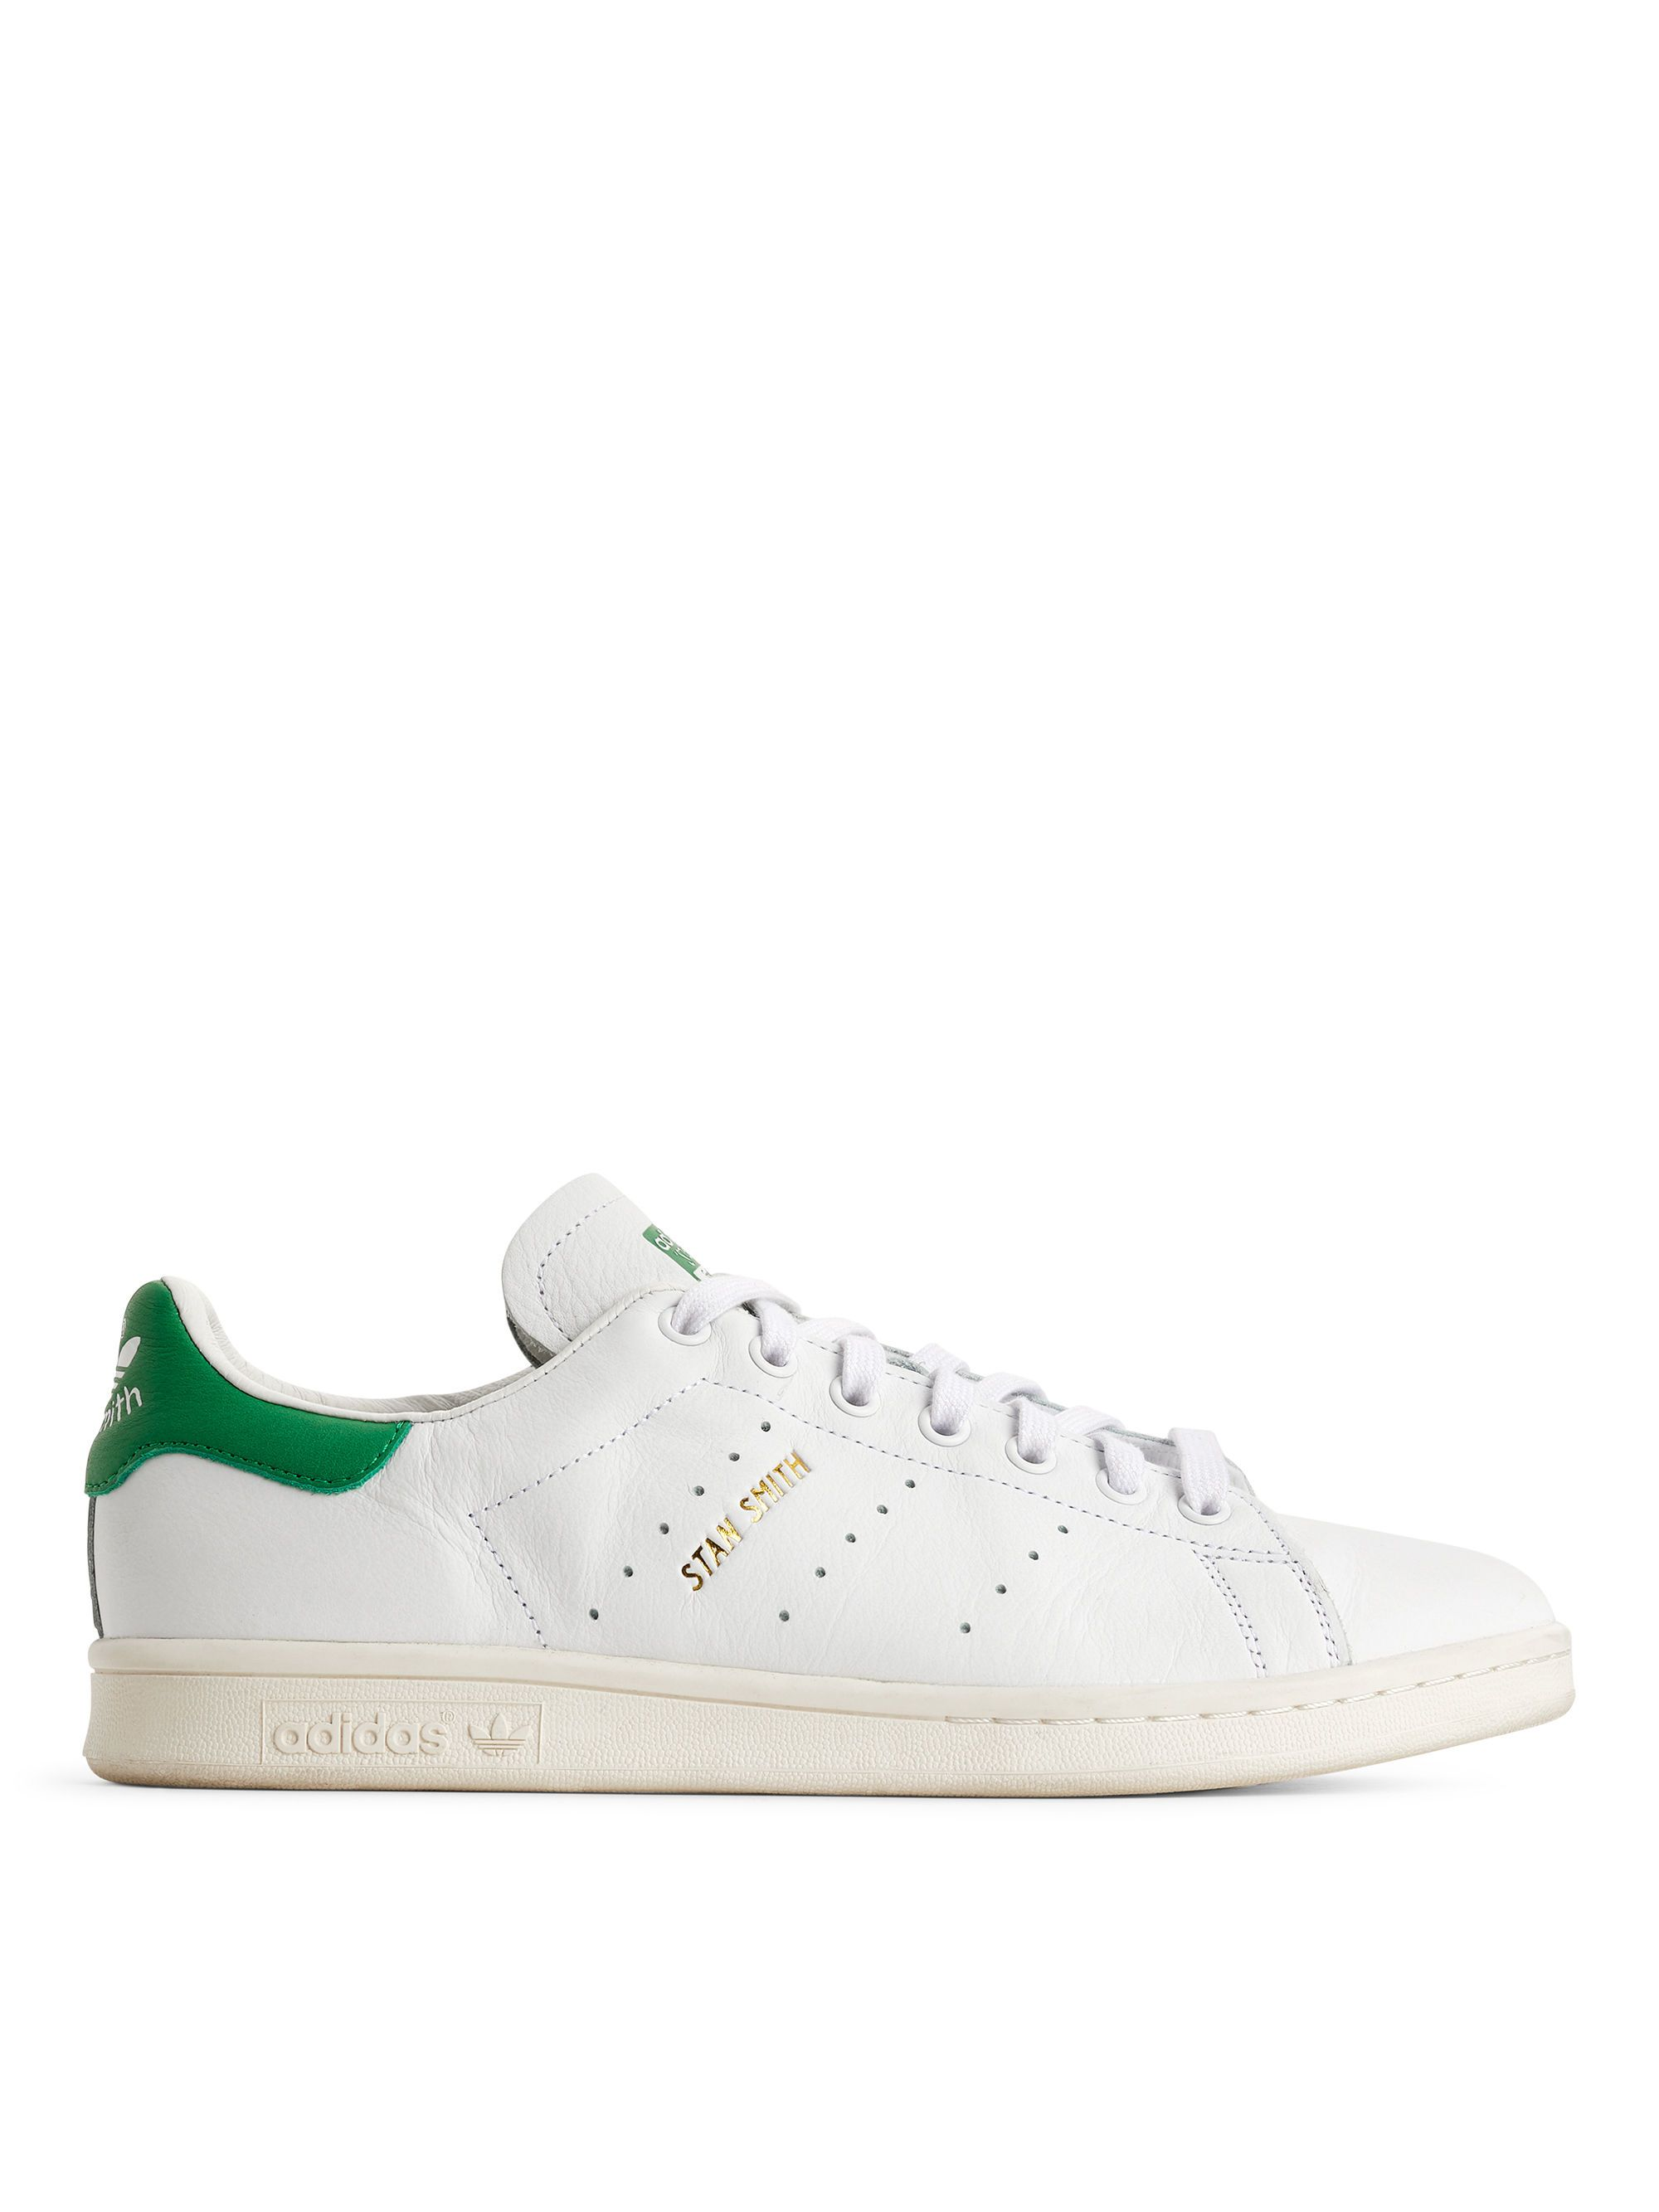 san francisco f751f 9f555 adidas Stan Smith Trainers - White - Shoes | Creative ...